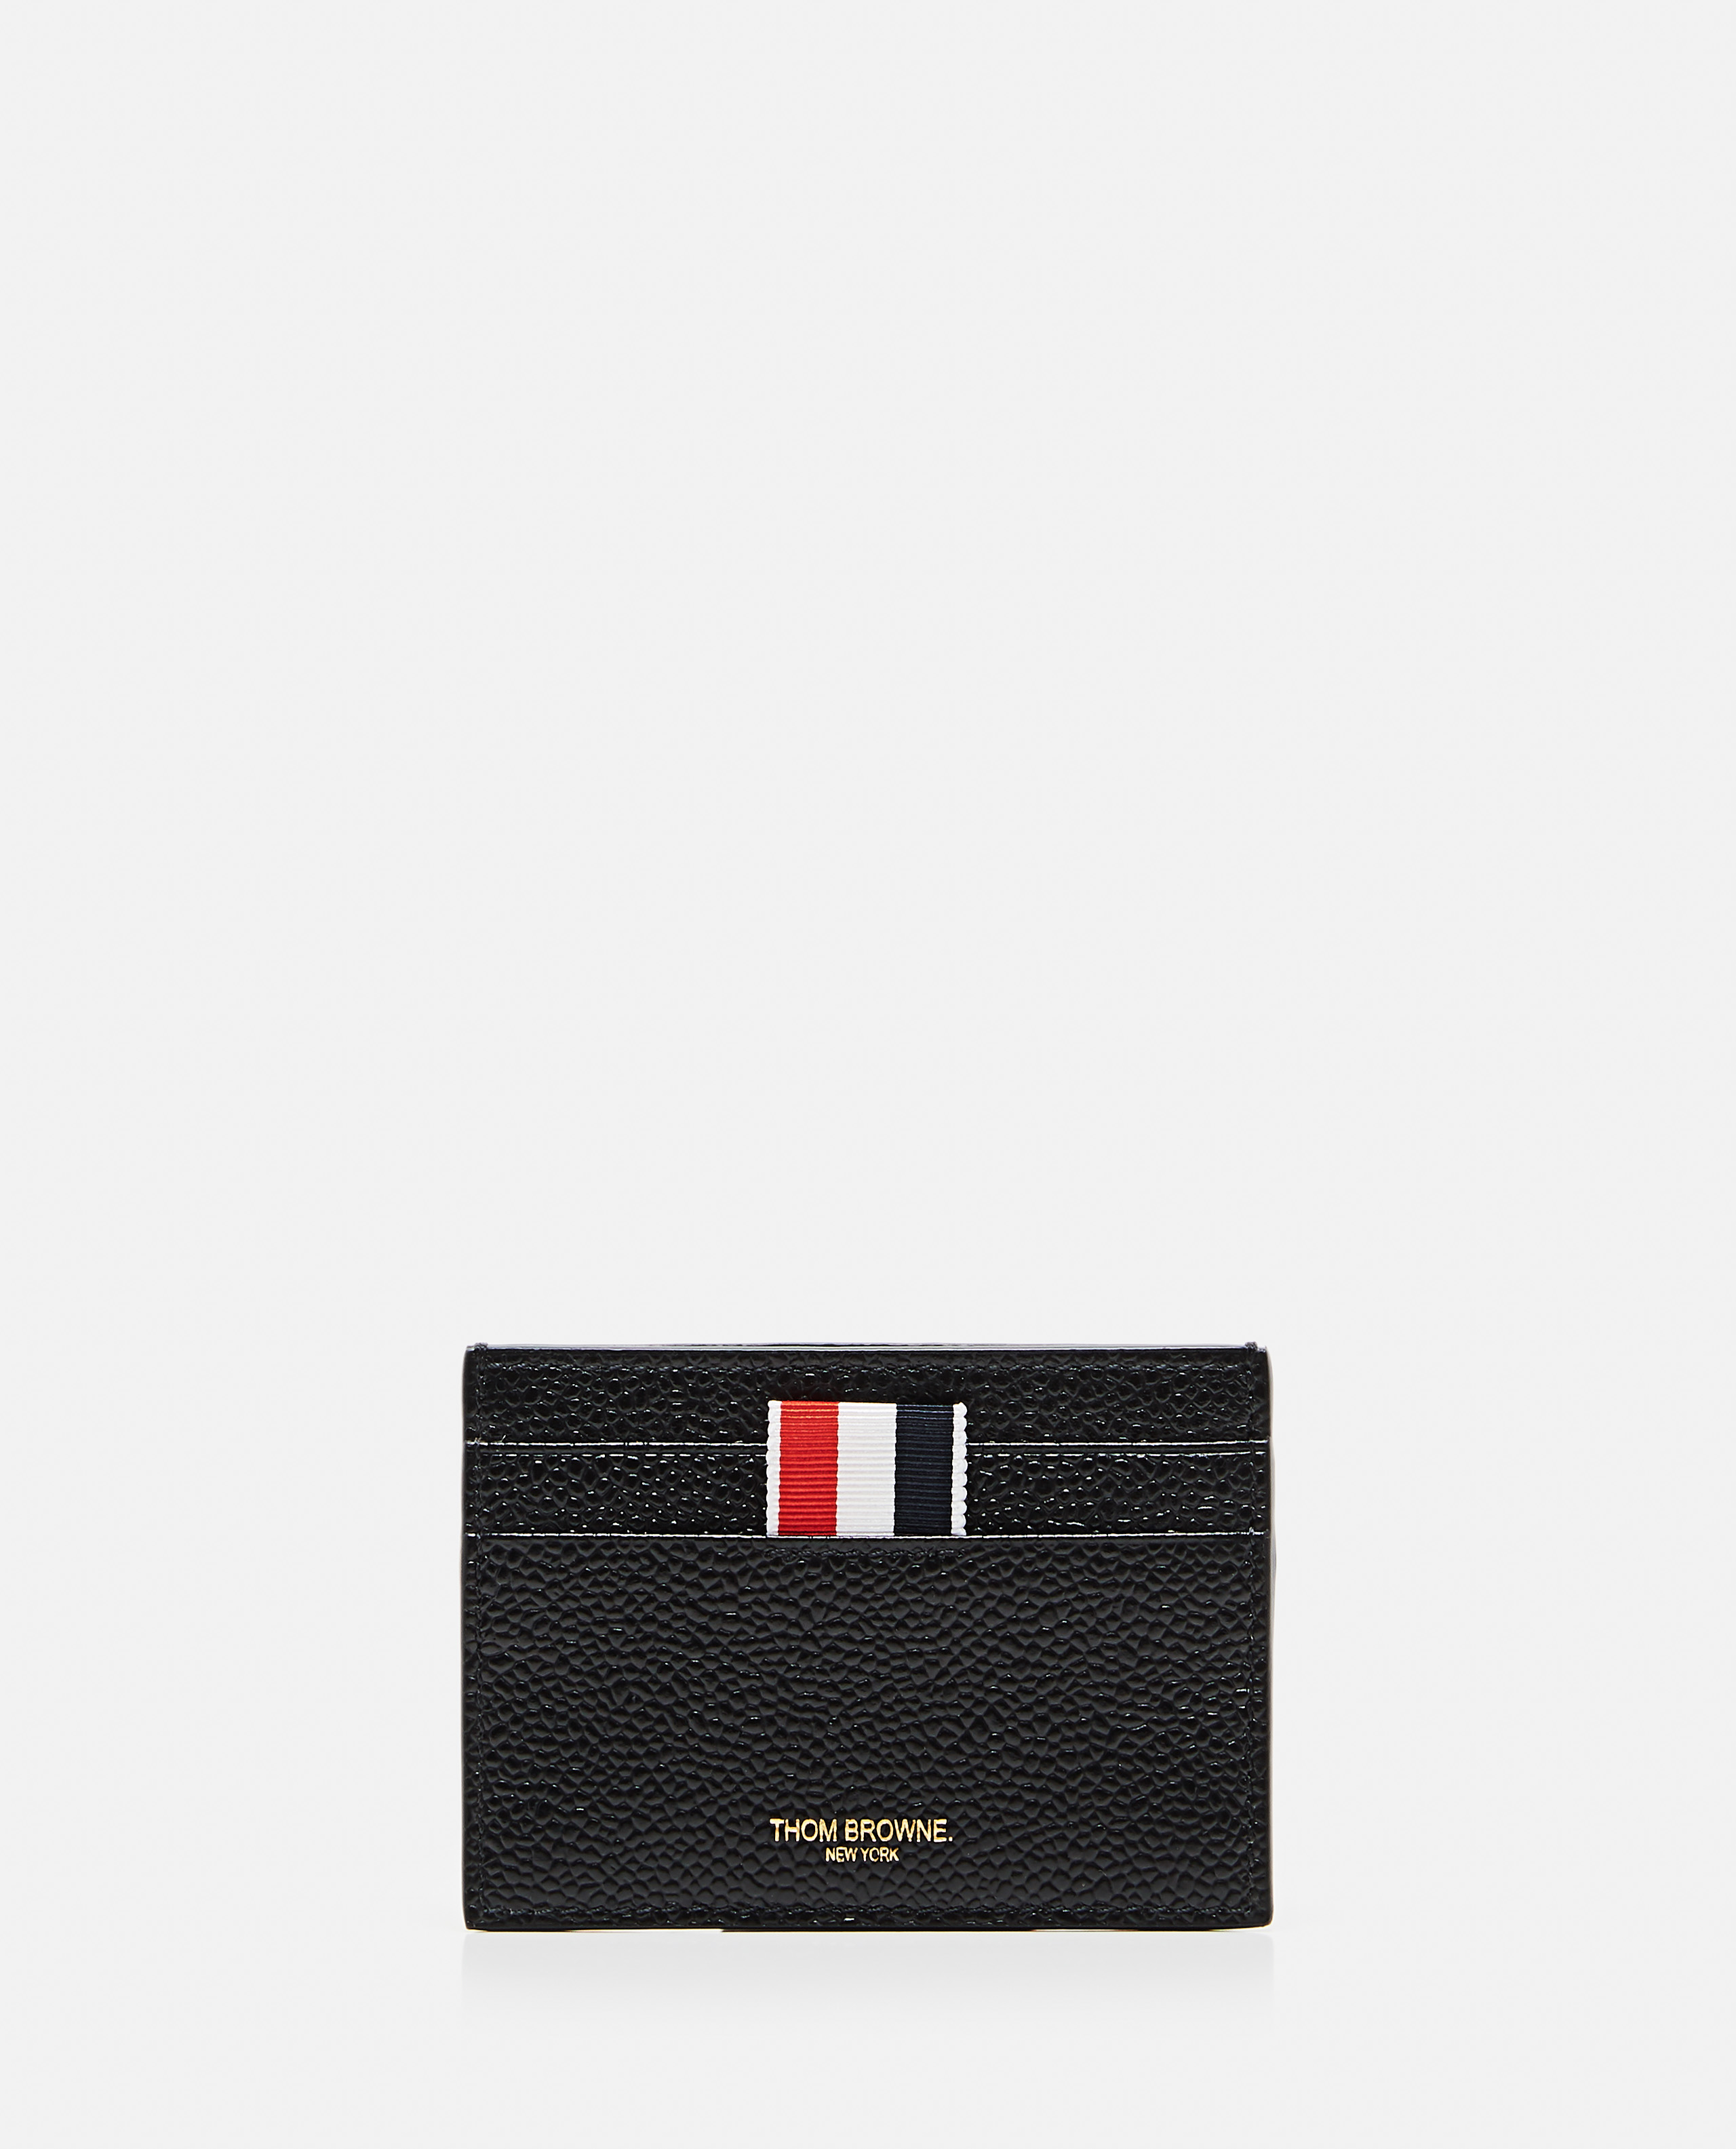 THOM BROWNE THOM BROWNE PEBBLE GRAIN LEATHER DOUBLE SIDED CARD HOLDER